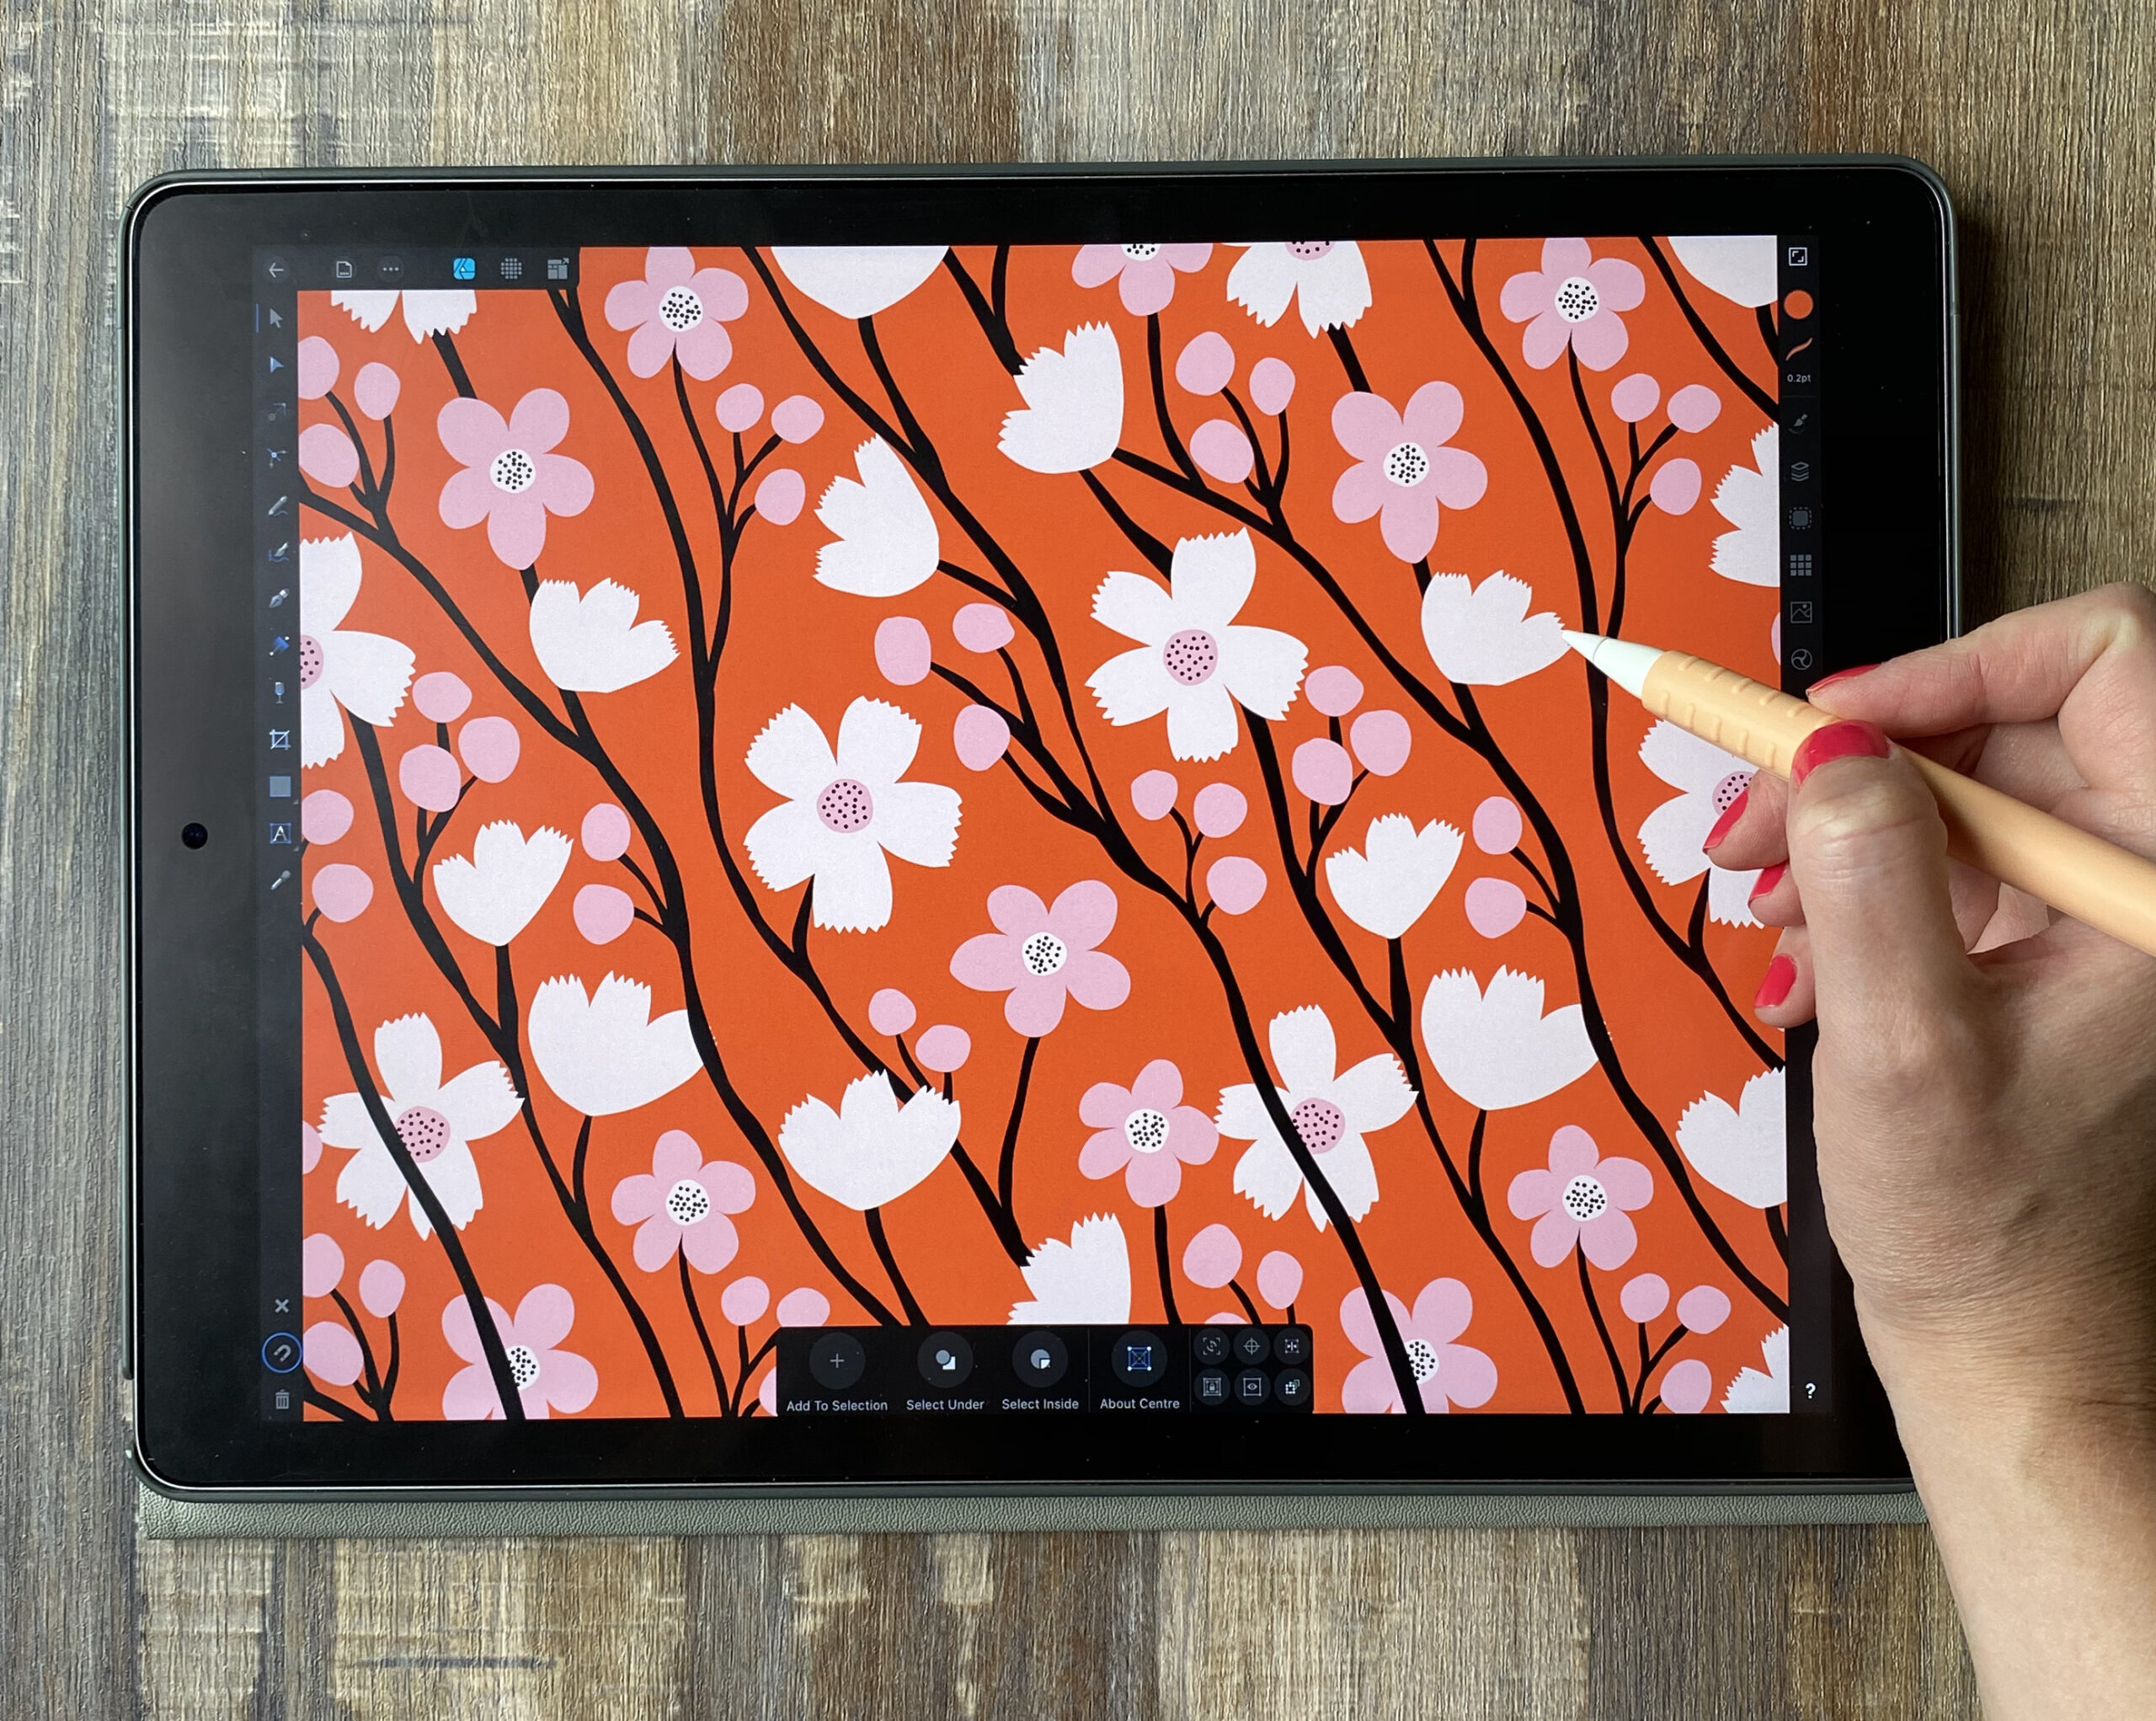 What is the Best iPad App for Making Repeat Patterns?